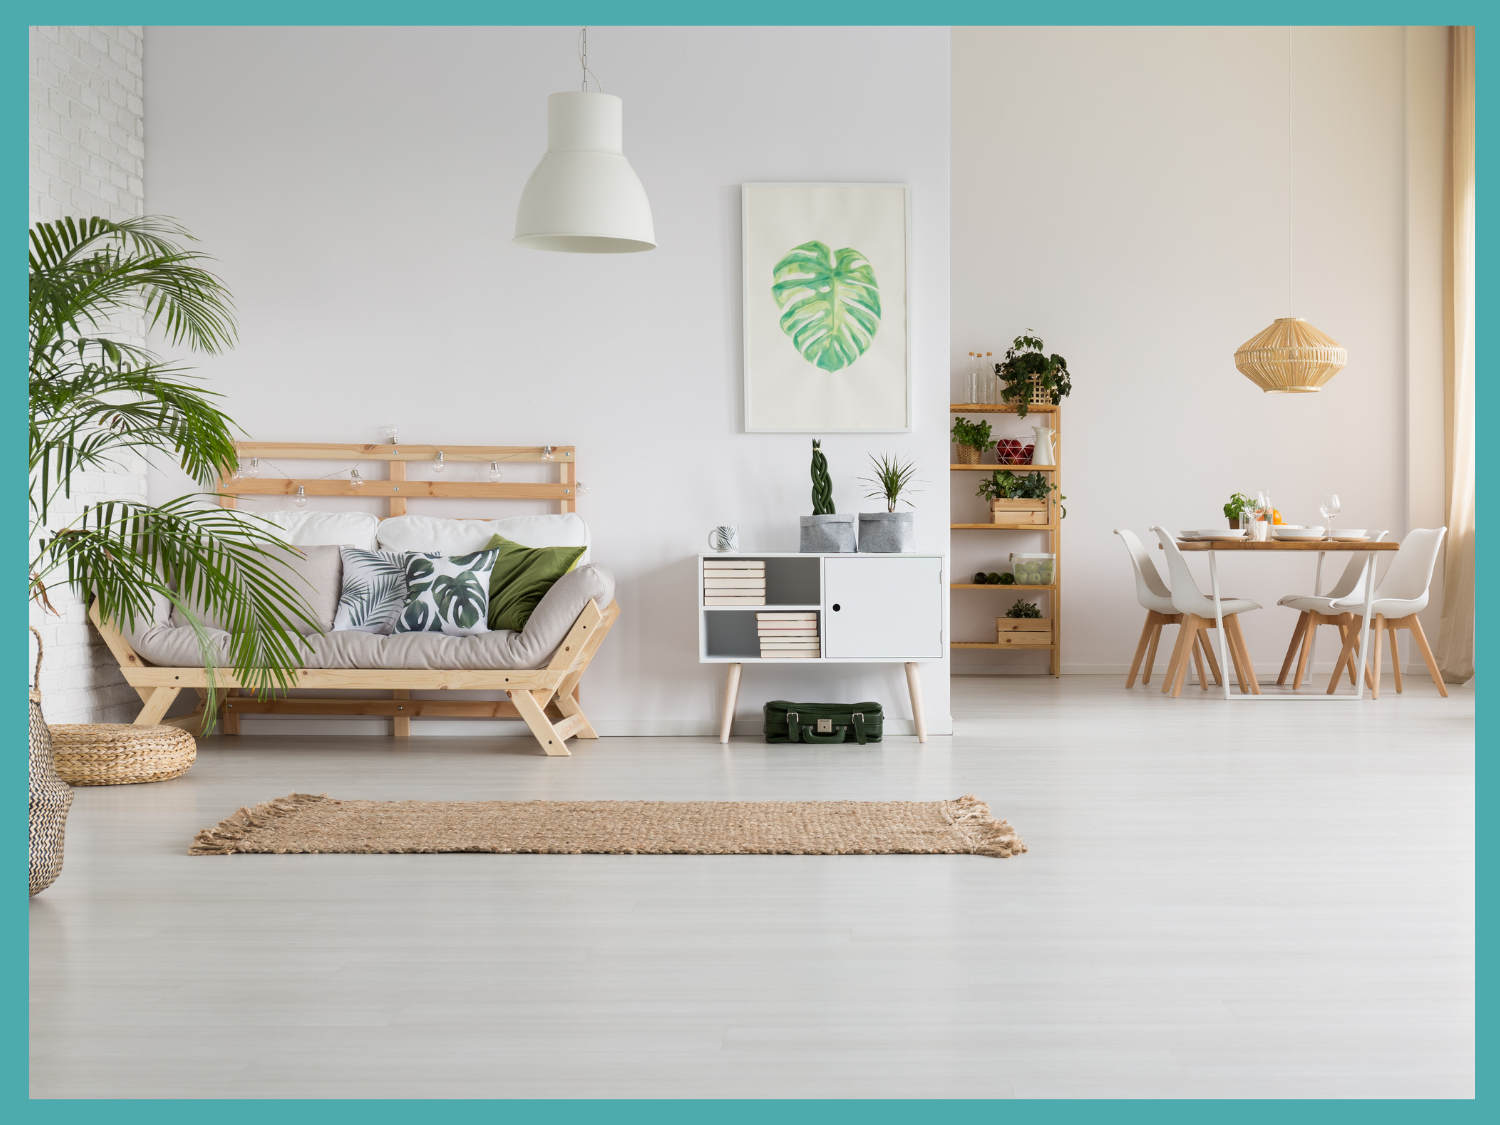 If you're looking to make your home look more modern but don't know where to start, here are five simple tips to help you make it look more trendy, modern, and fashionable.